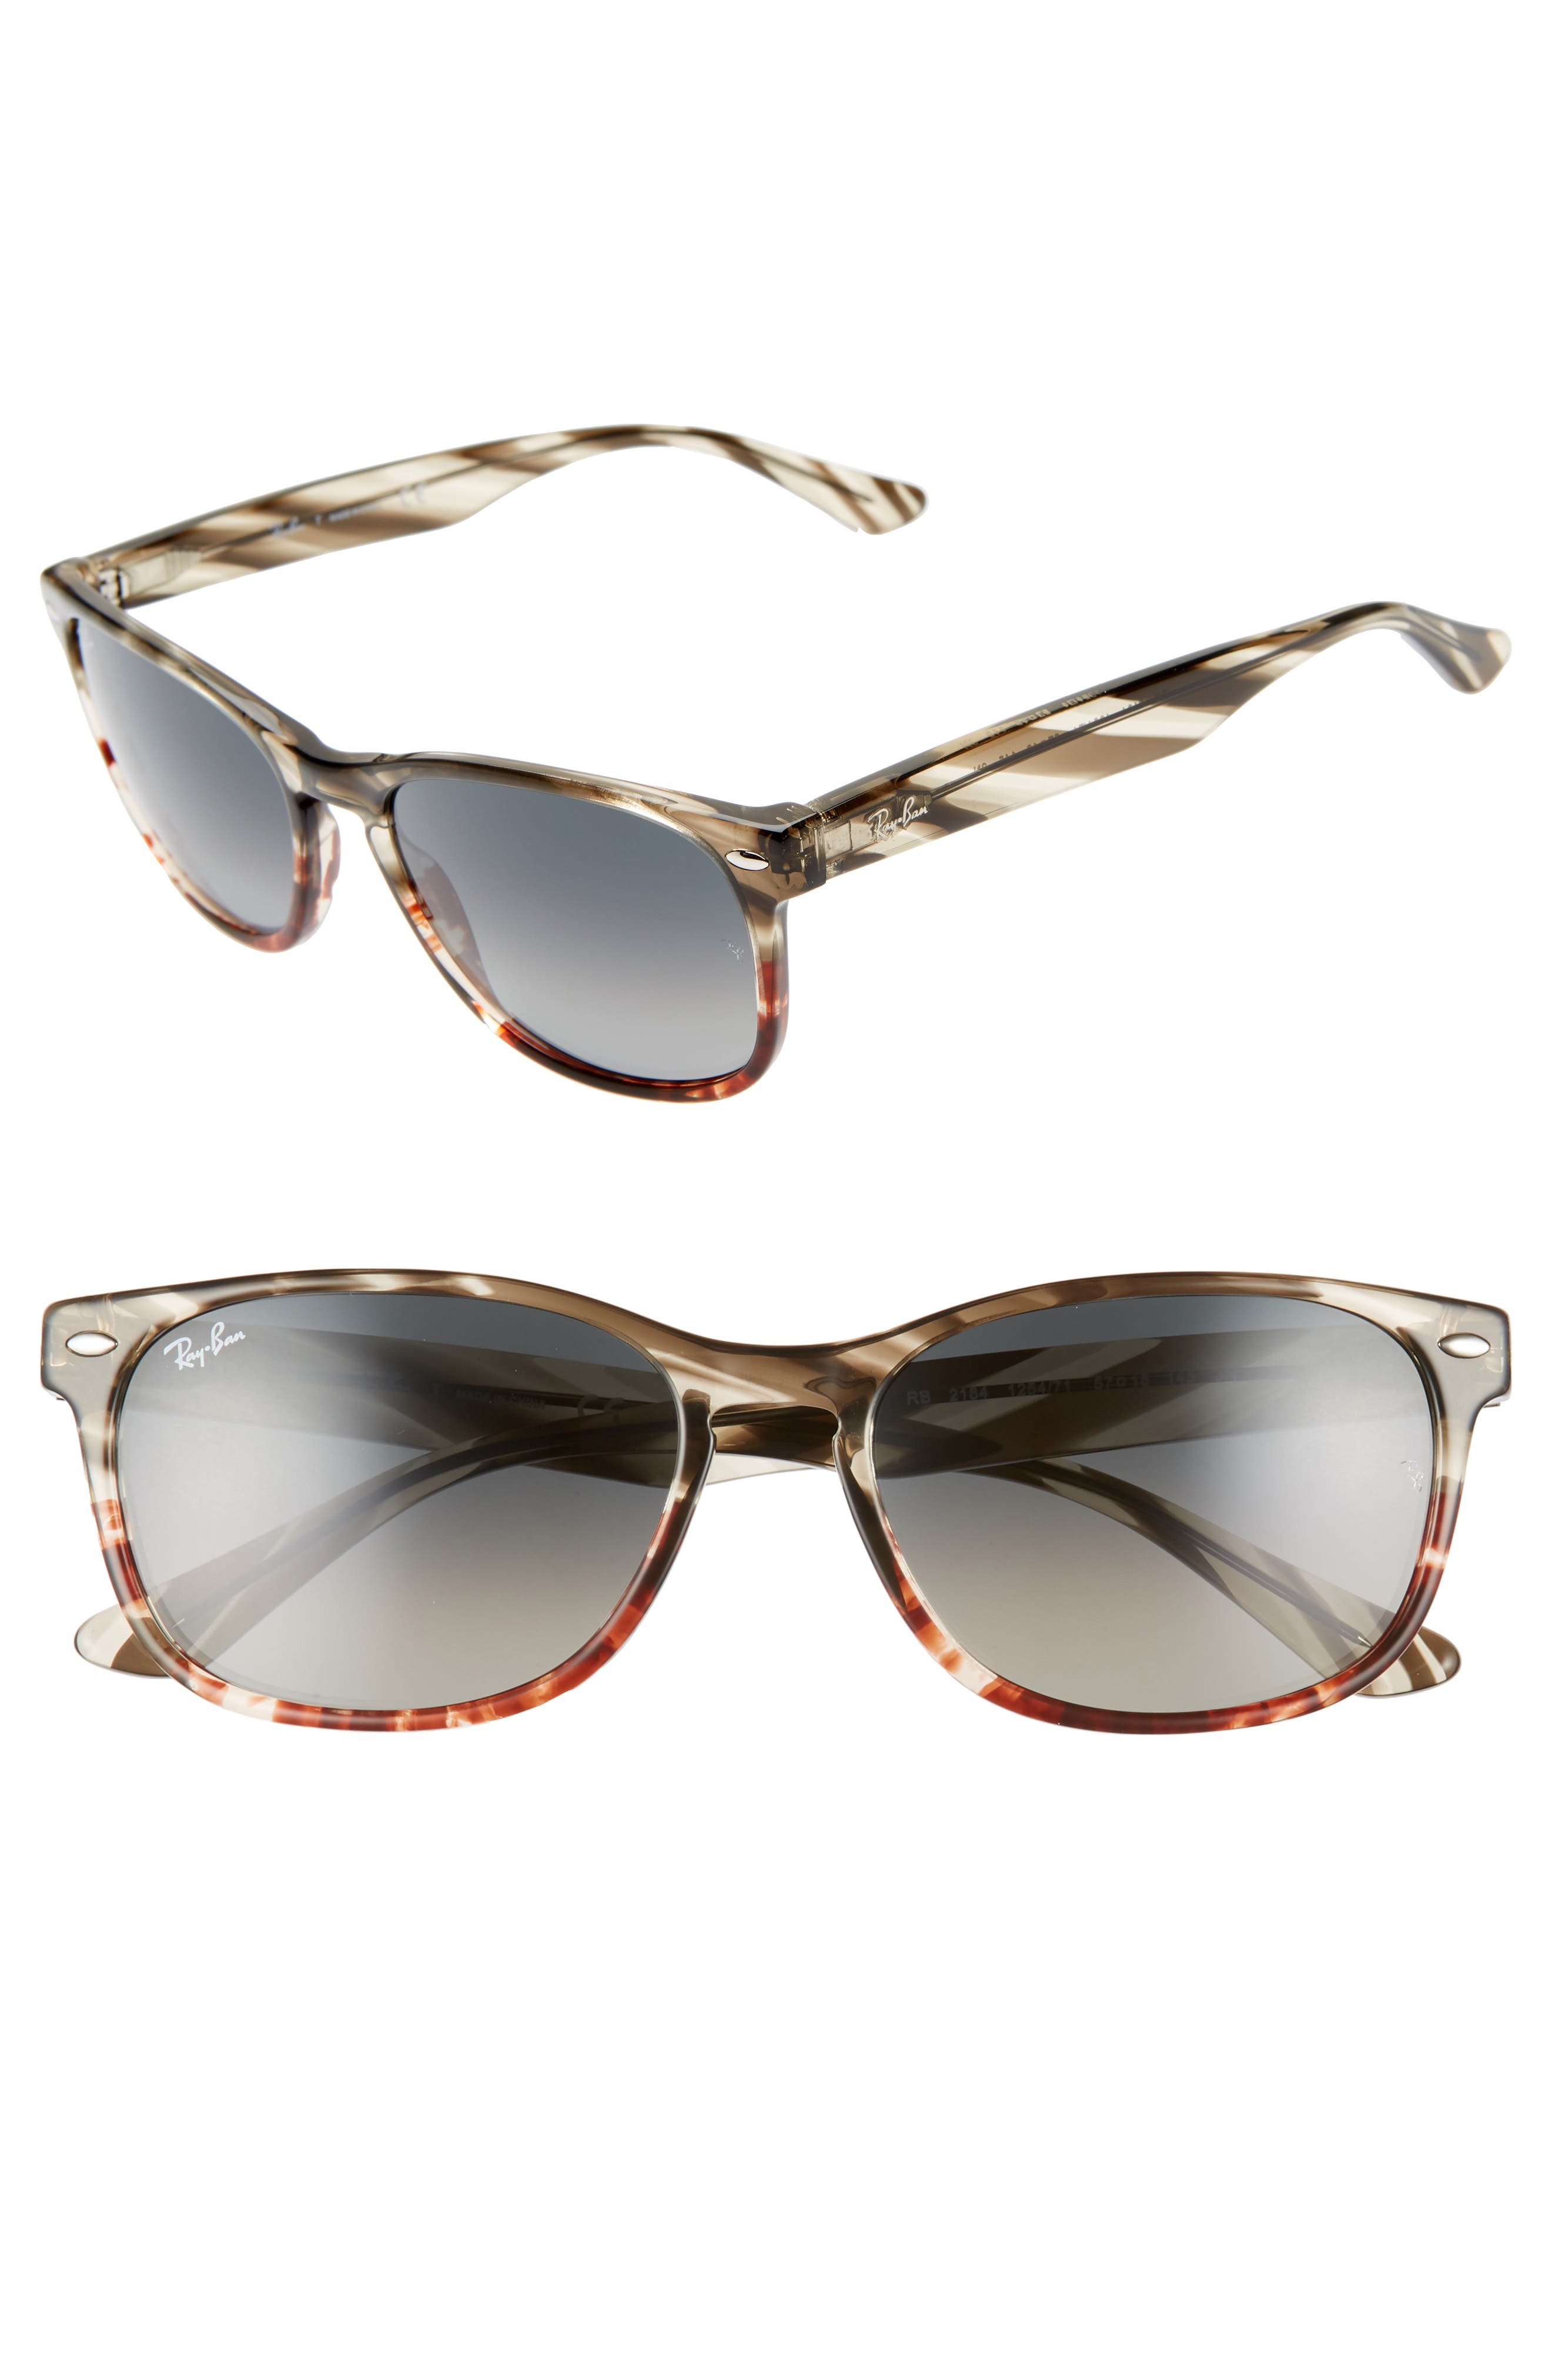 Ray-Ban Highstreet 57Mm Square Sunglasses - Brown/ Grey Gradient